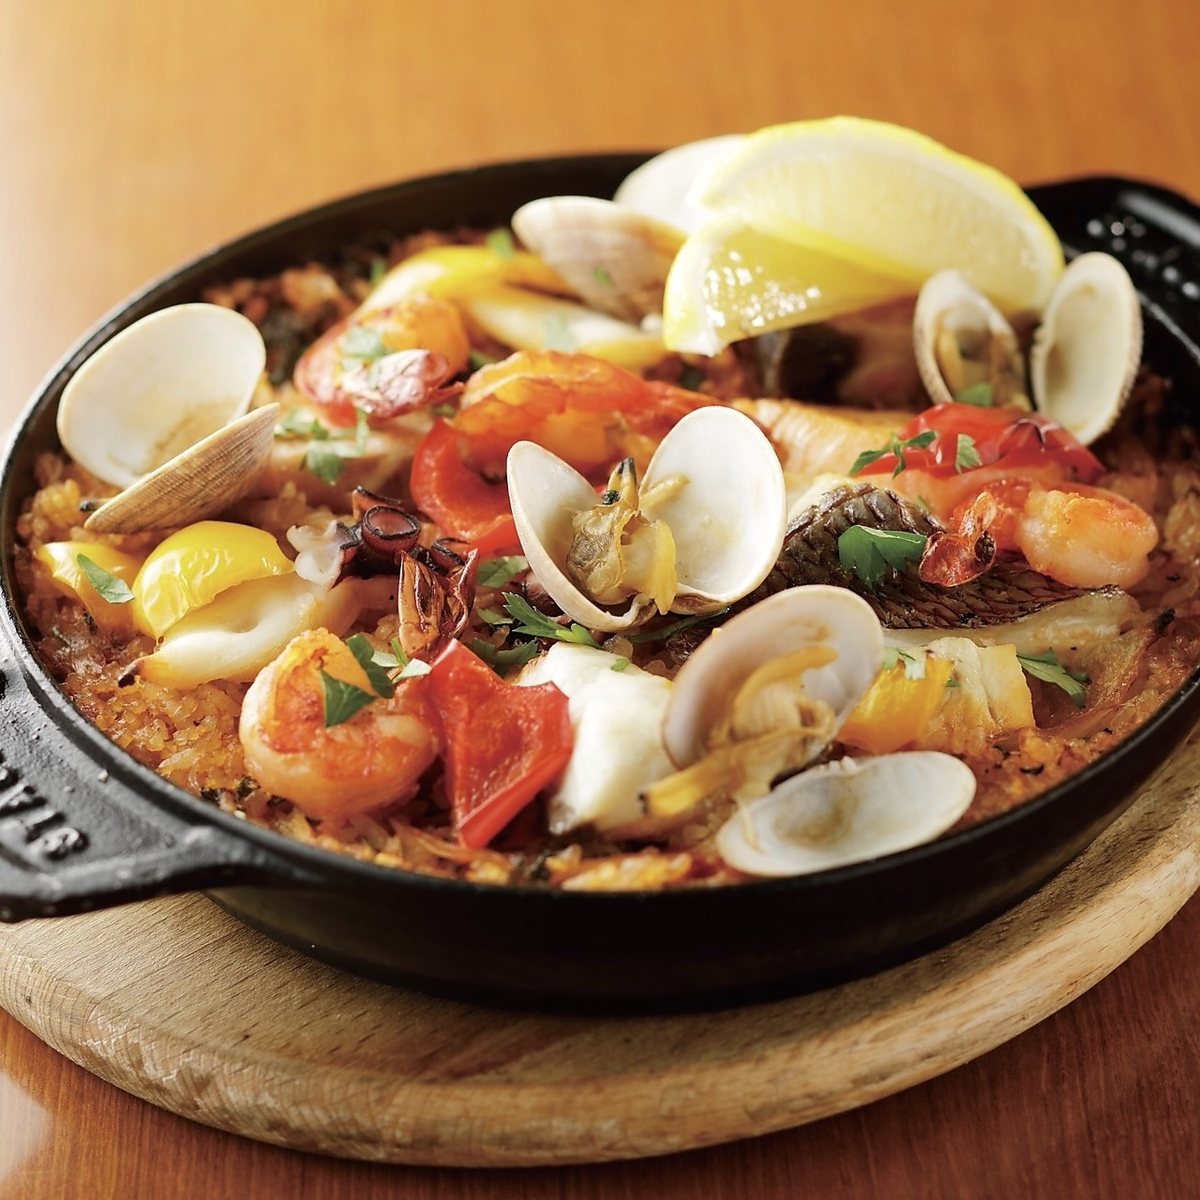 Paea with seafood and chicken